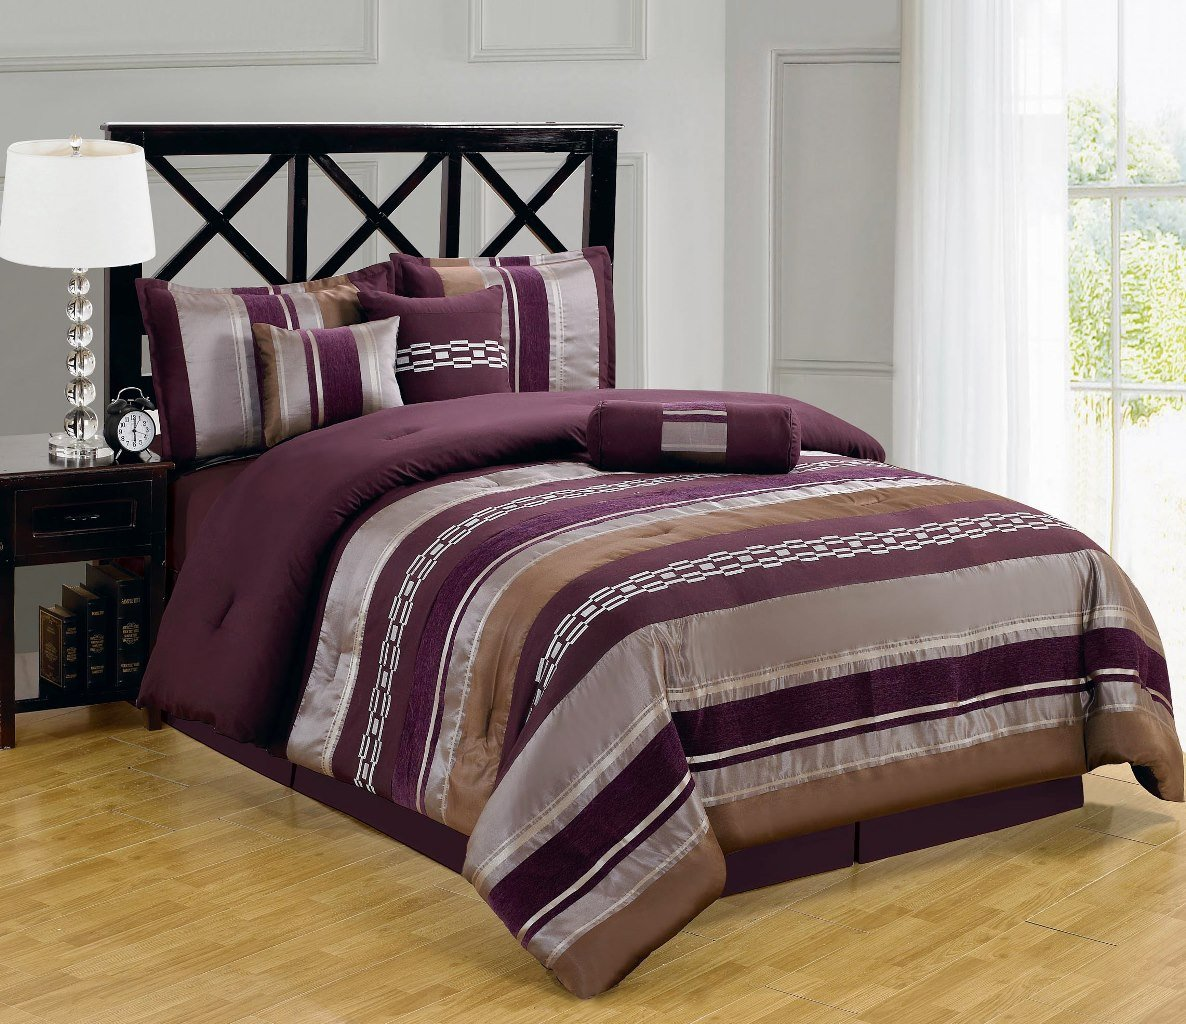 sheetsnthings Full size 11pc Claudia Purple set includes:7PC  Comforter set and 4PC Microfiber sheet set at Sears.com